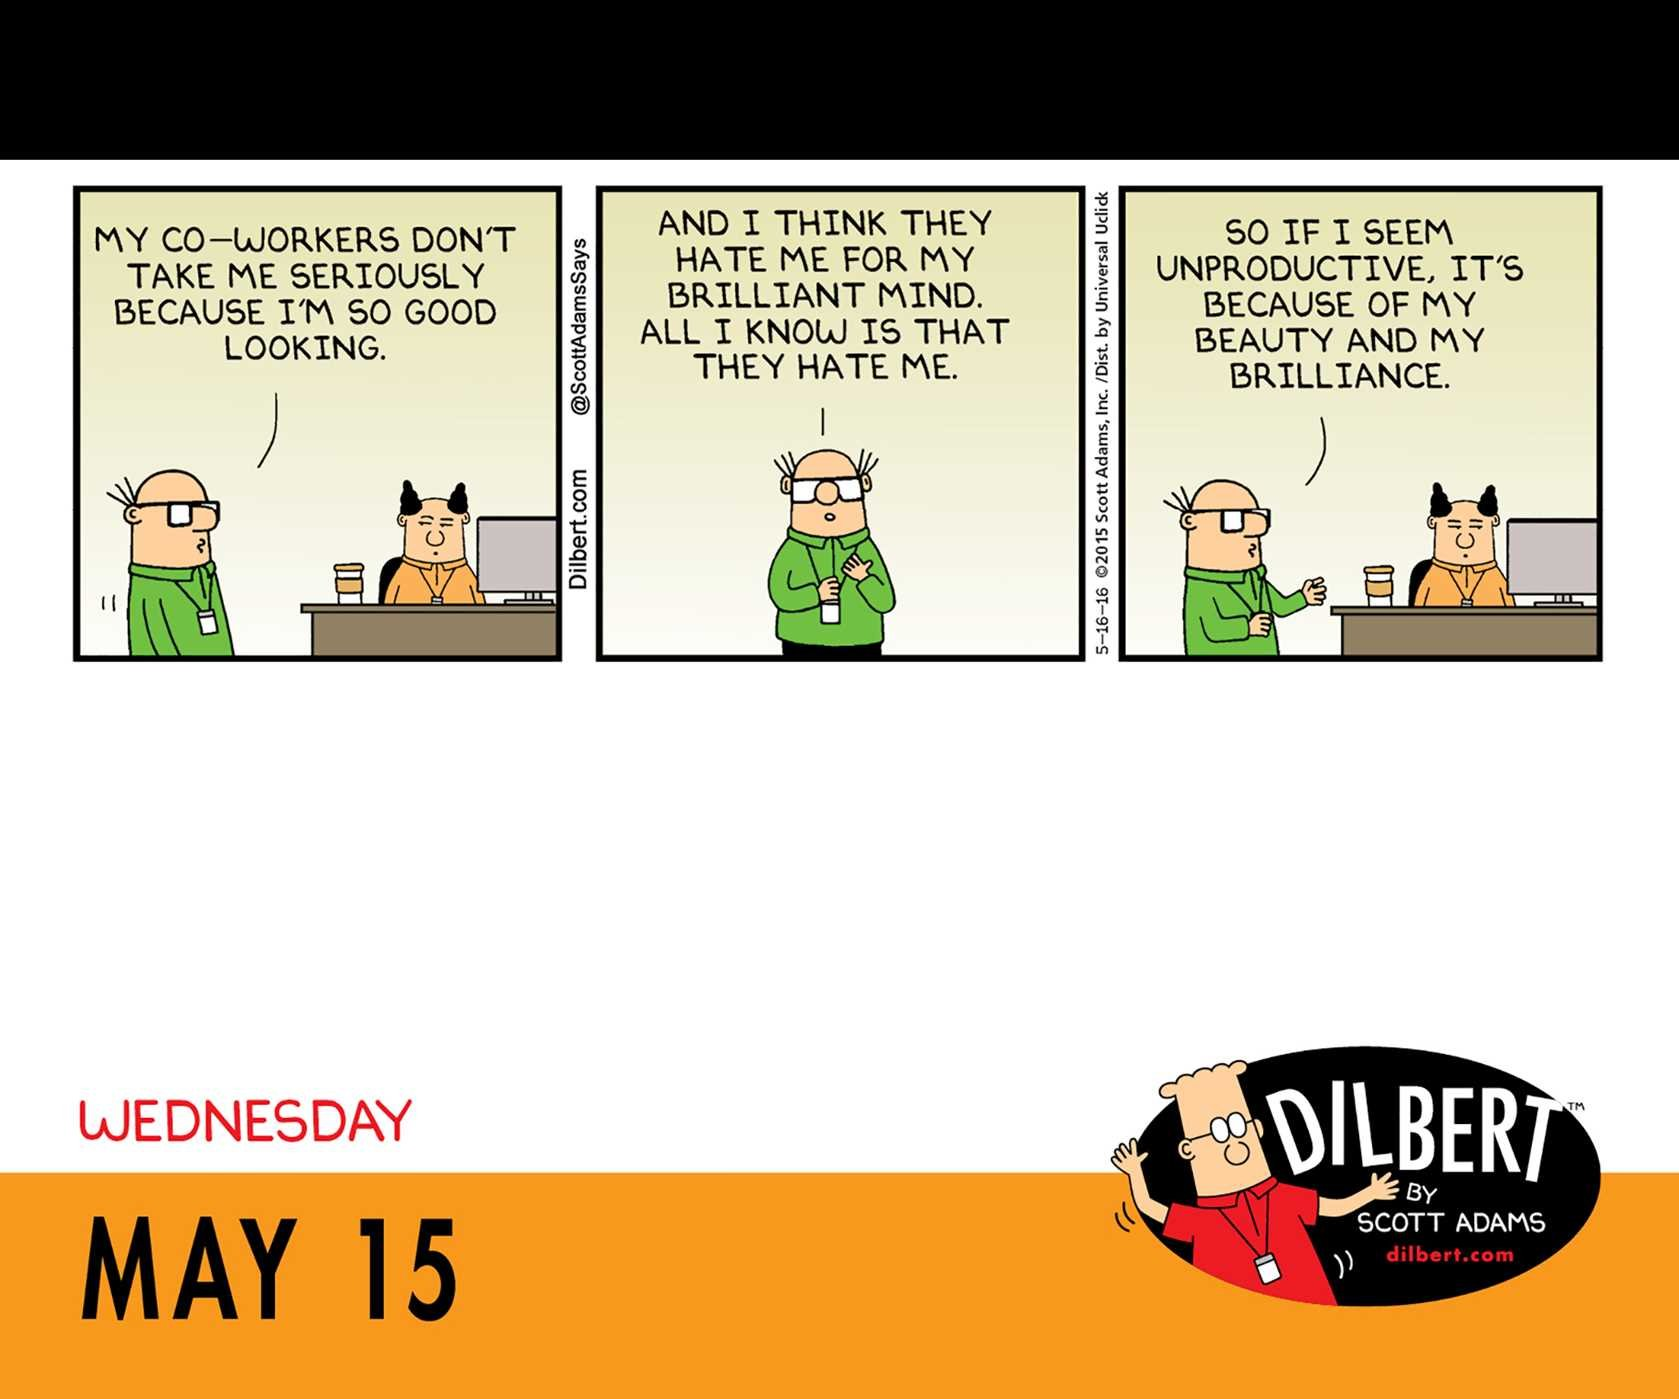 Comic strip co worker od dilbert opinion you